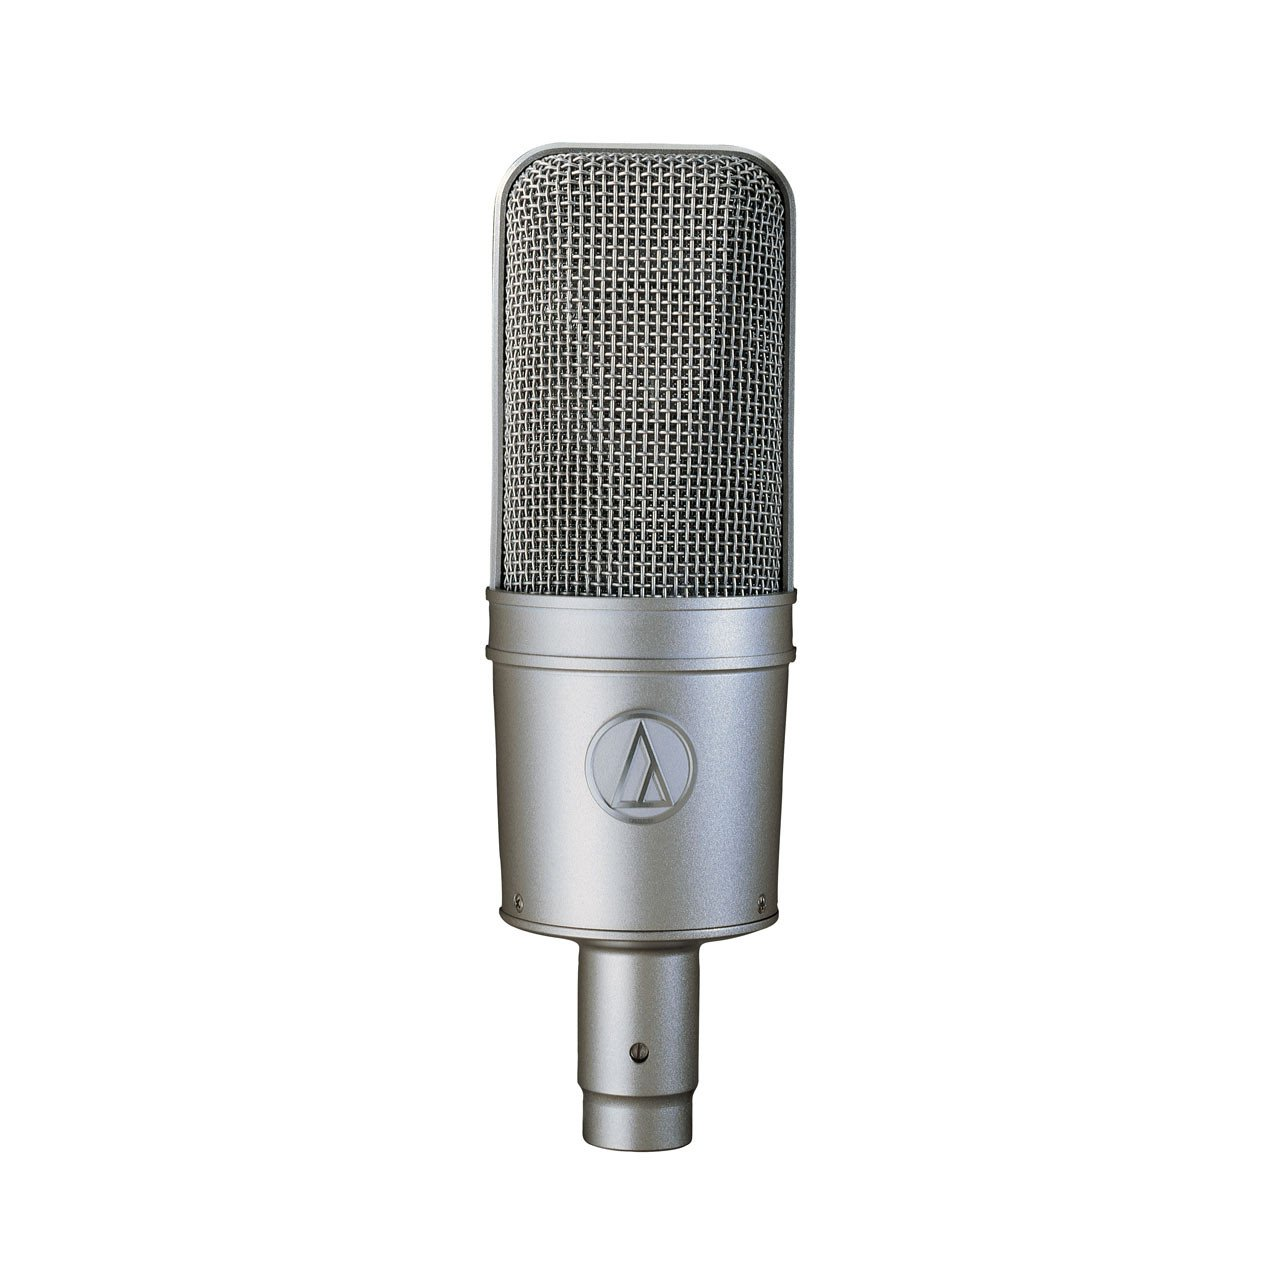 Condenser Microphones - Audio-Technica AT4047 SV - Large Diaphragm FET Cardioid Condenser Microphone